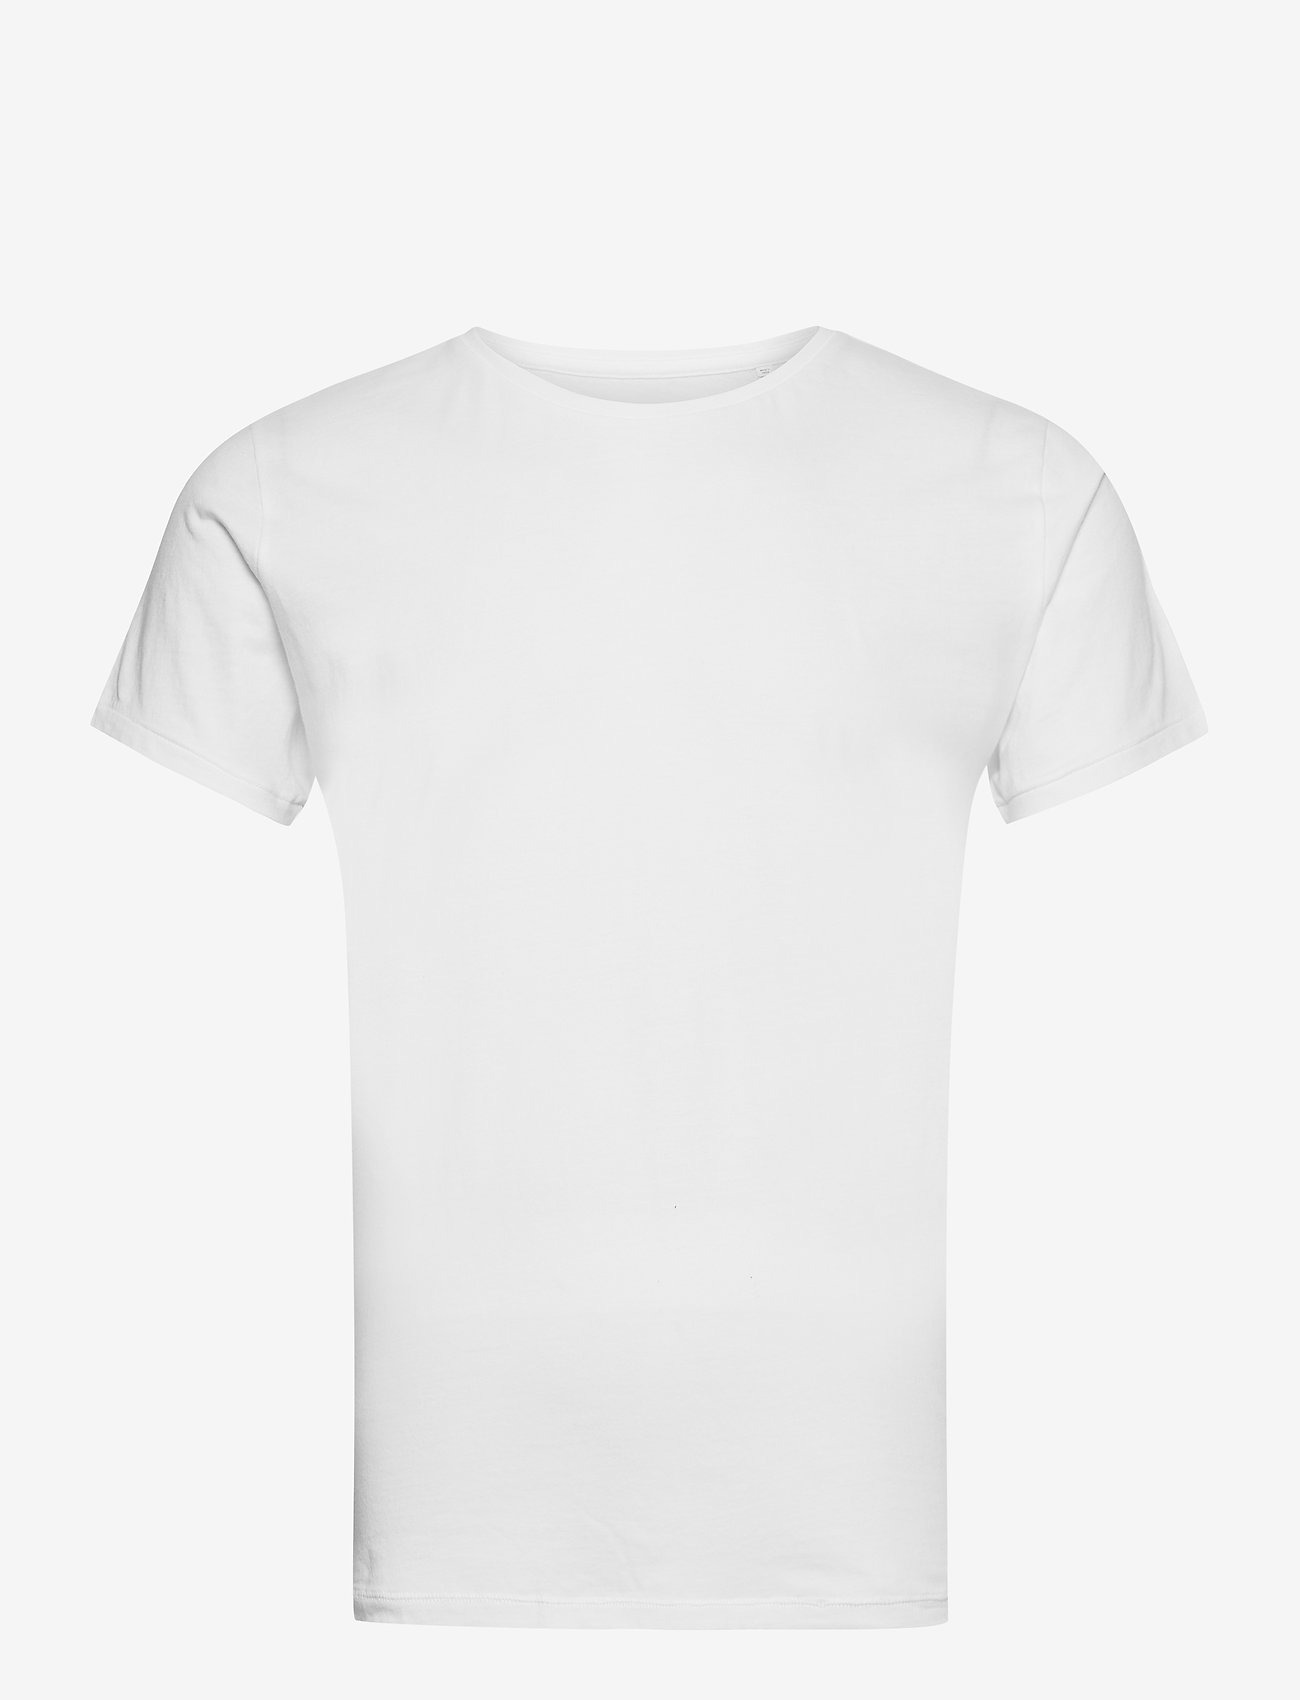 Knowledge Cotton Apparel - ALDER 5 pack basic tee - flat packe - basic t-shirts - bright white - 8